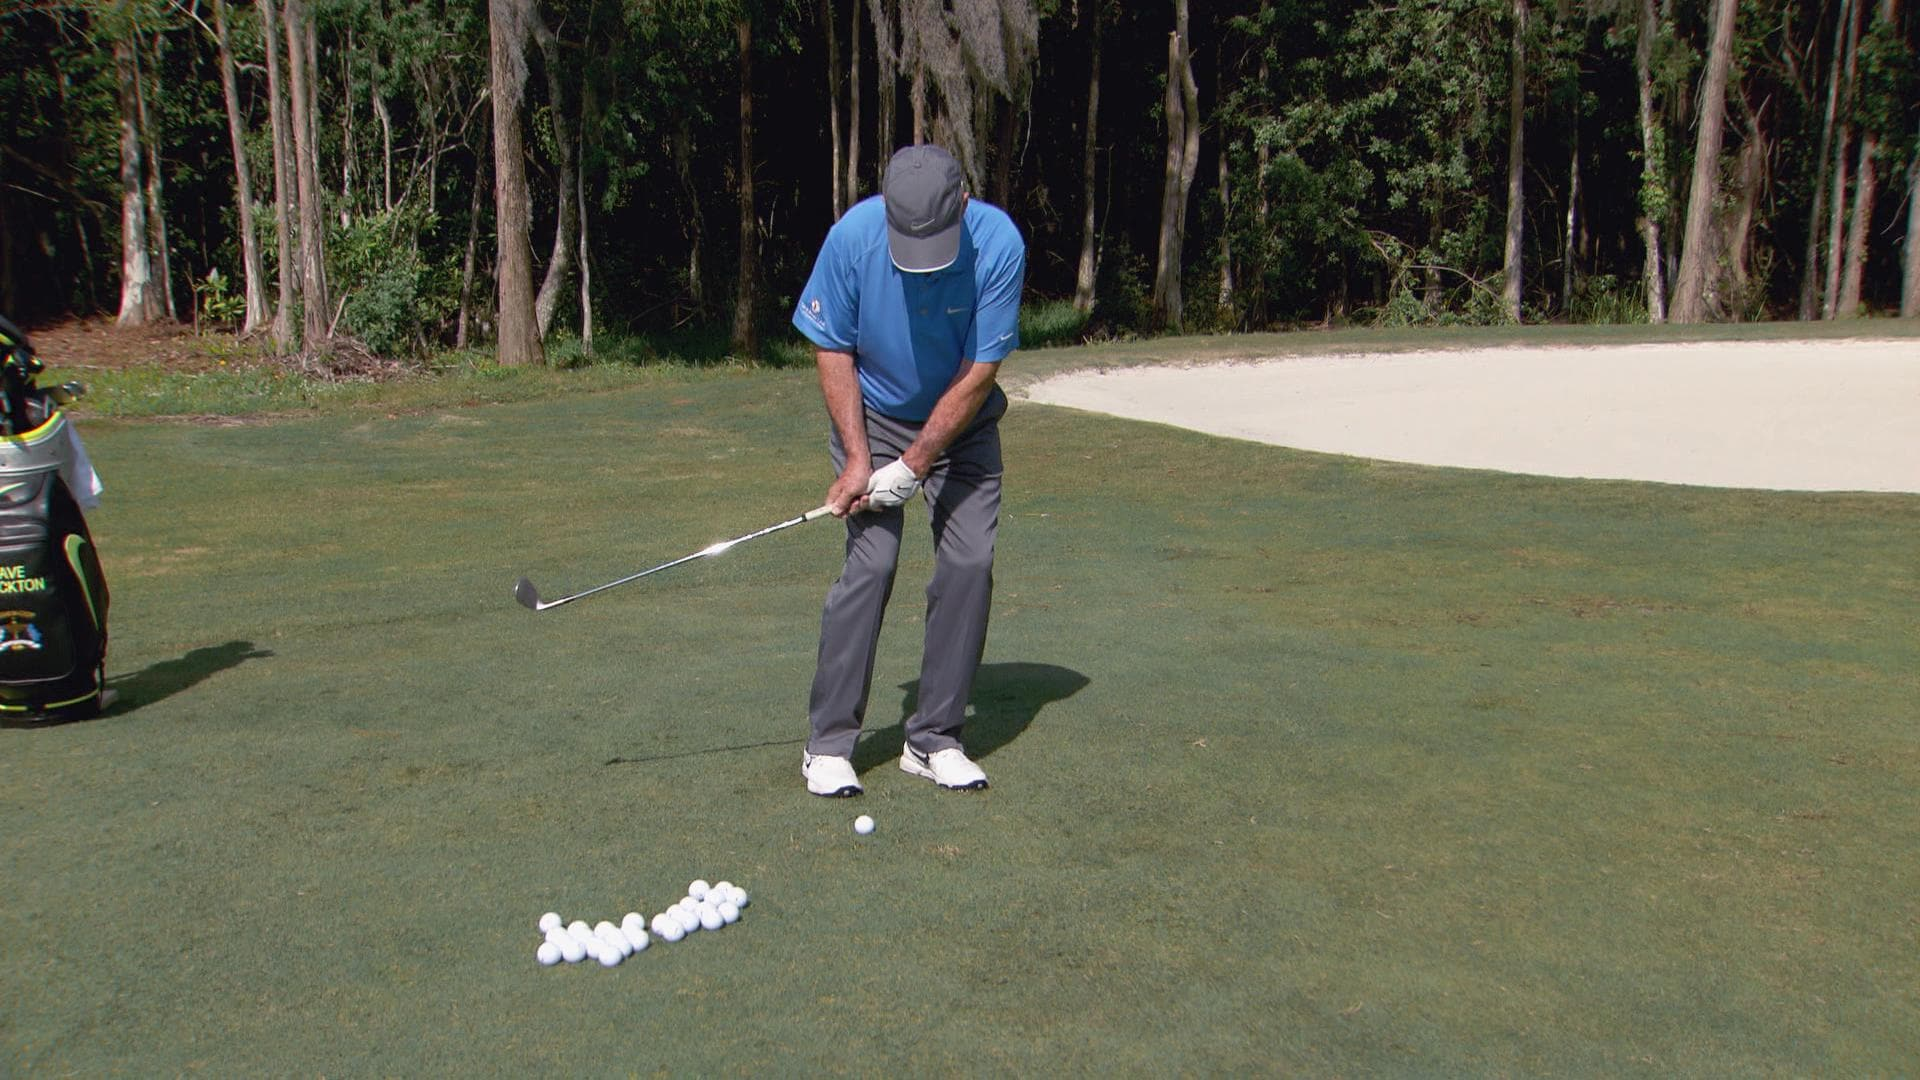 Dave Stockton on chipping low and high golf shots